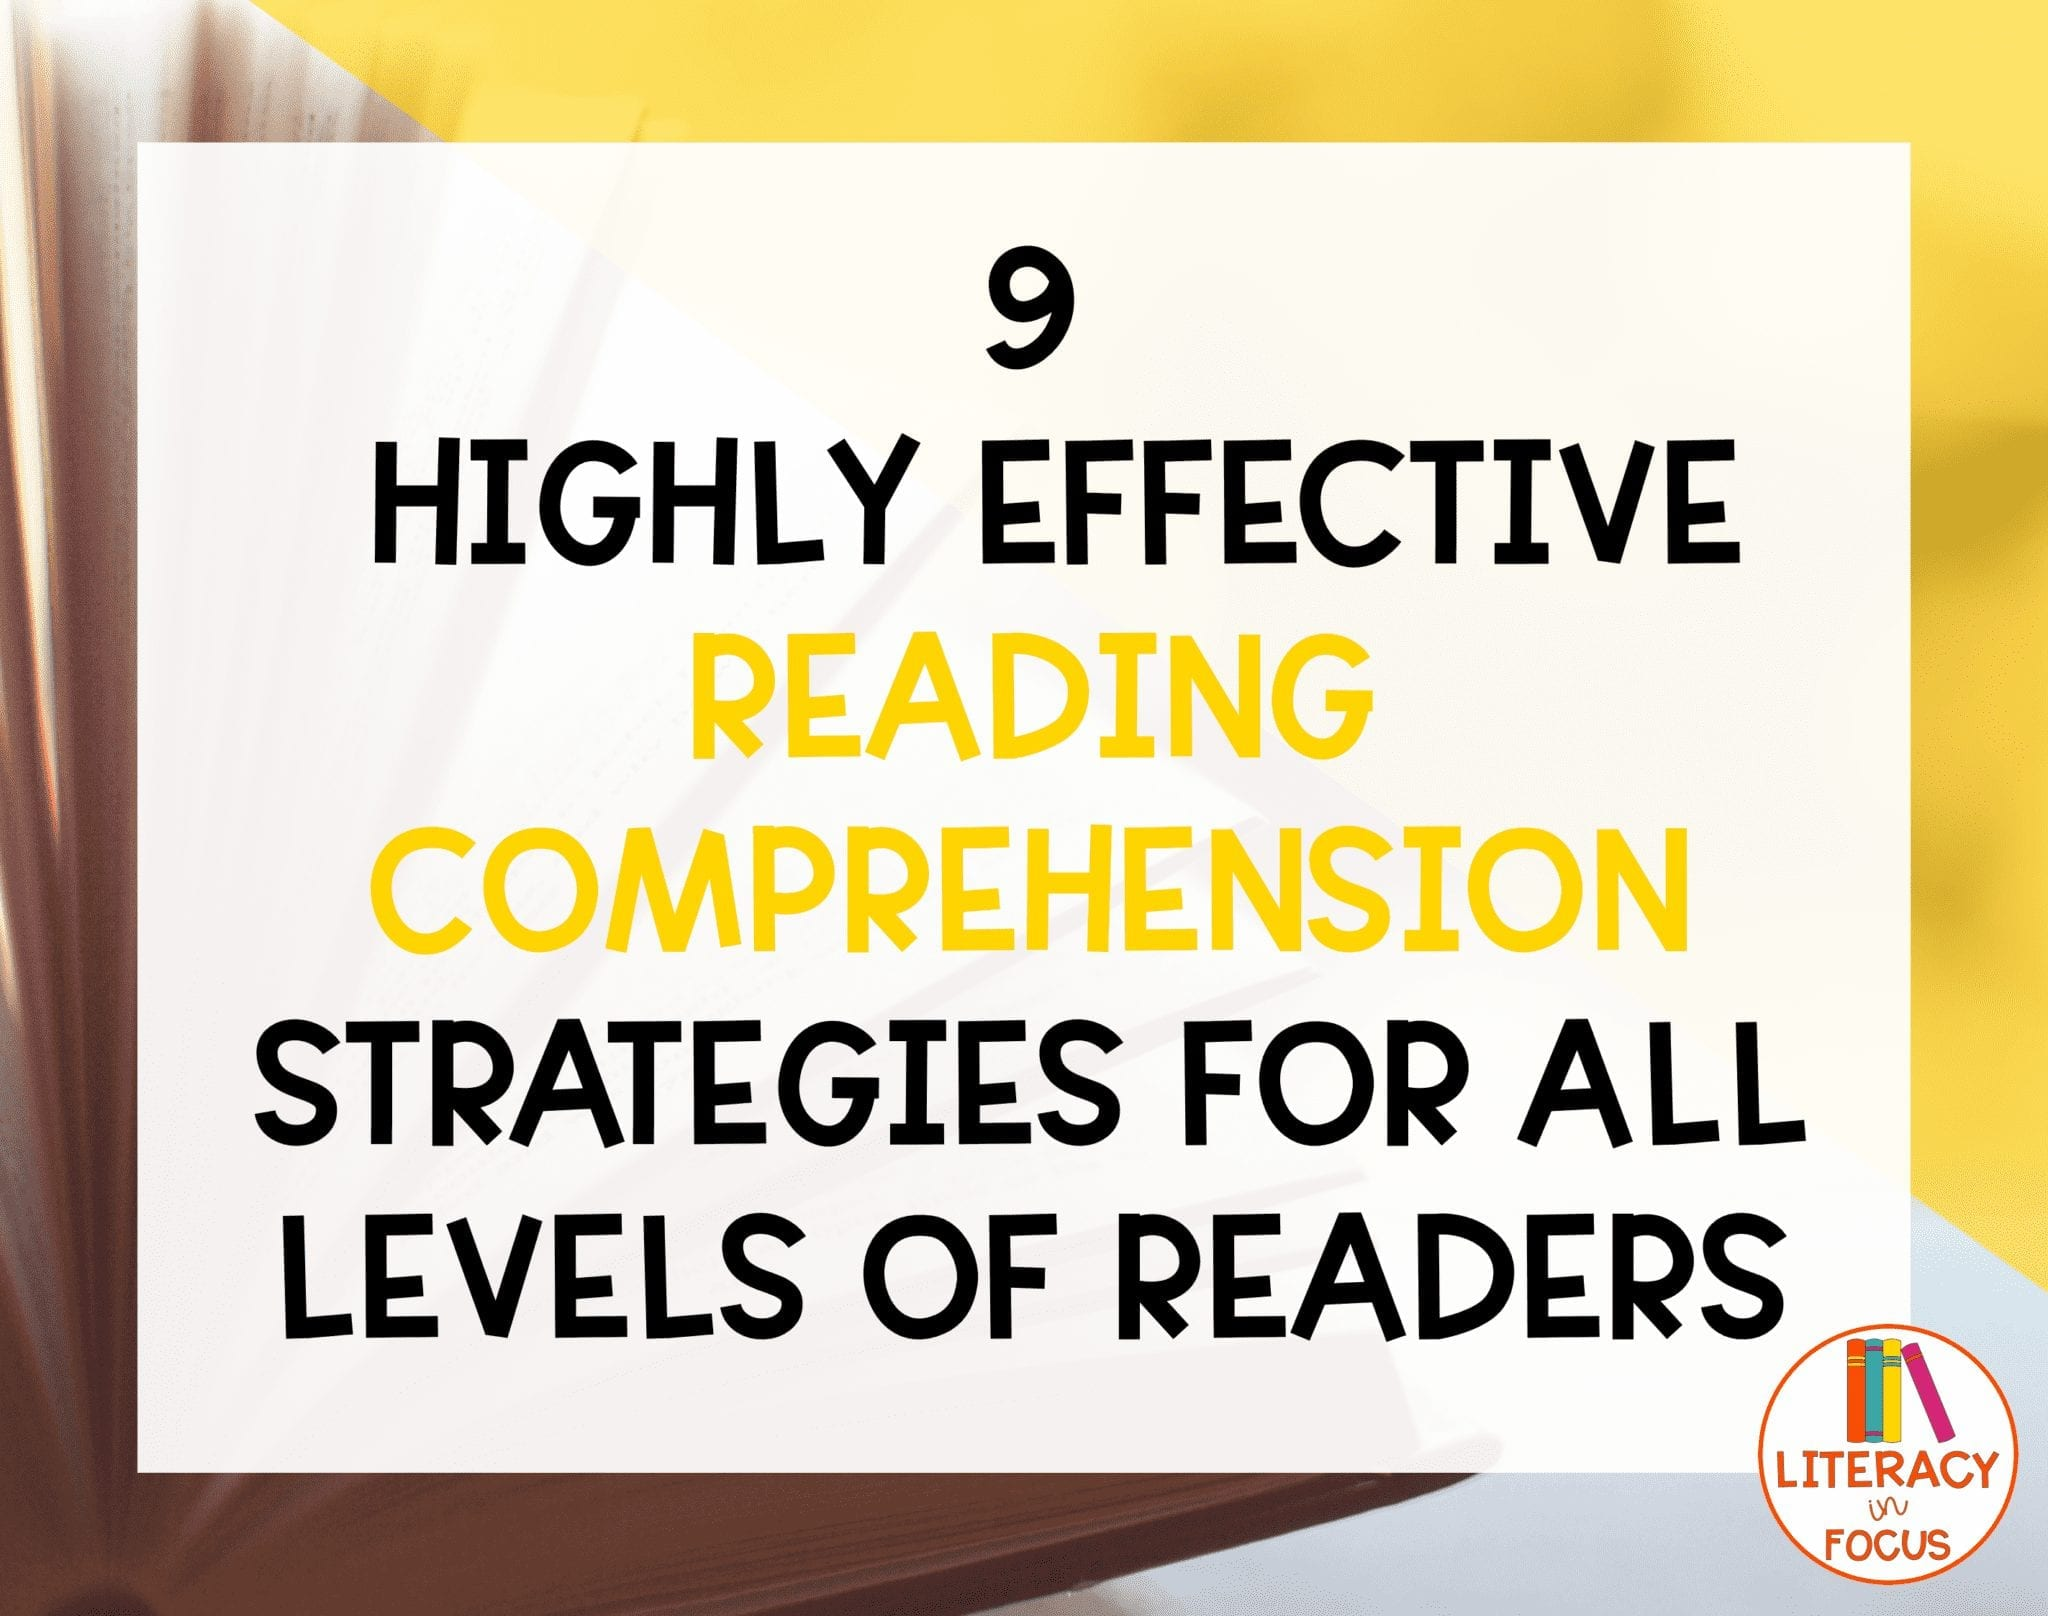 - 9 Highly Effective Reading Comprehension Strategies For All Levels